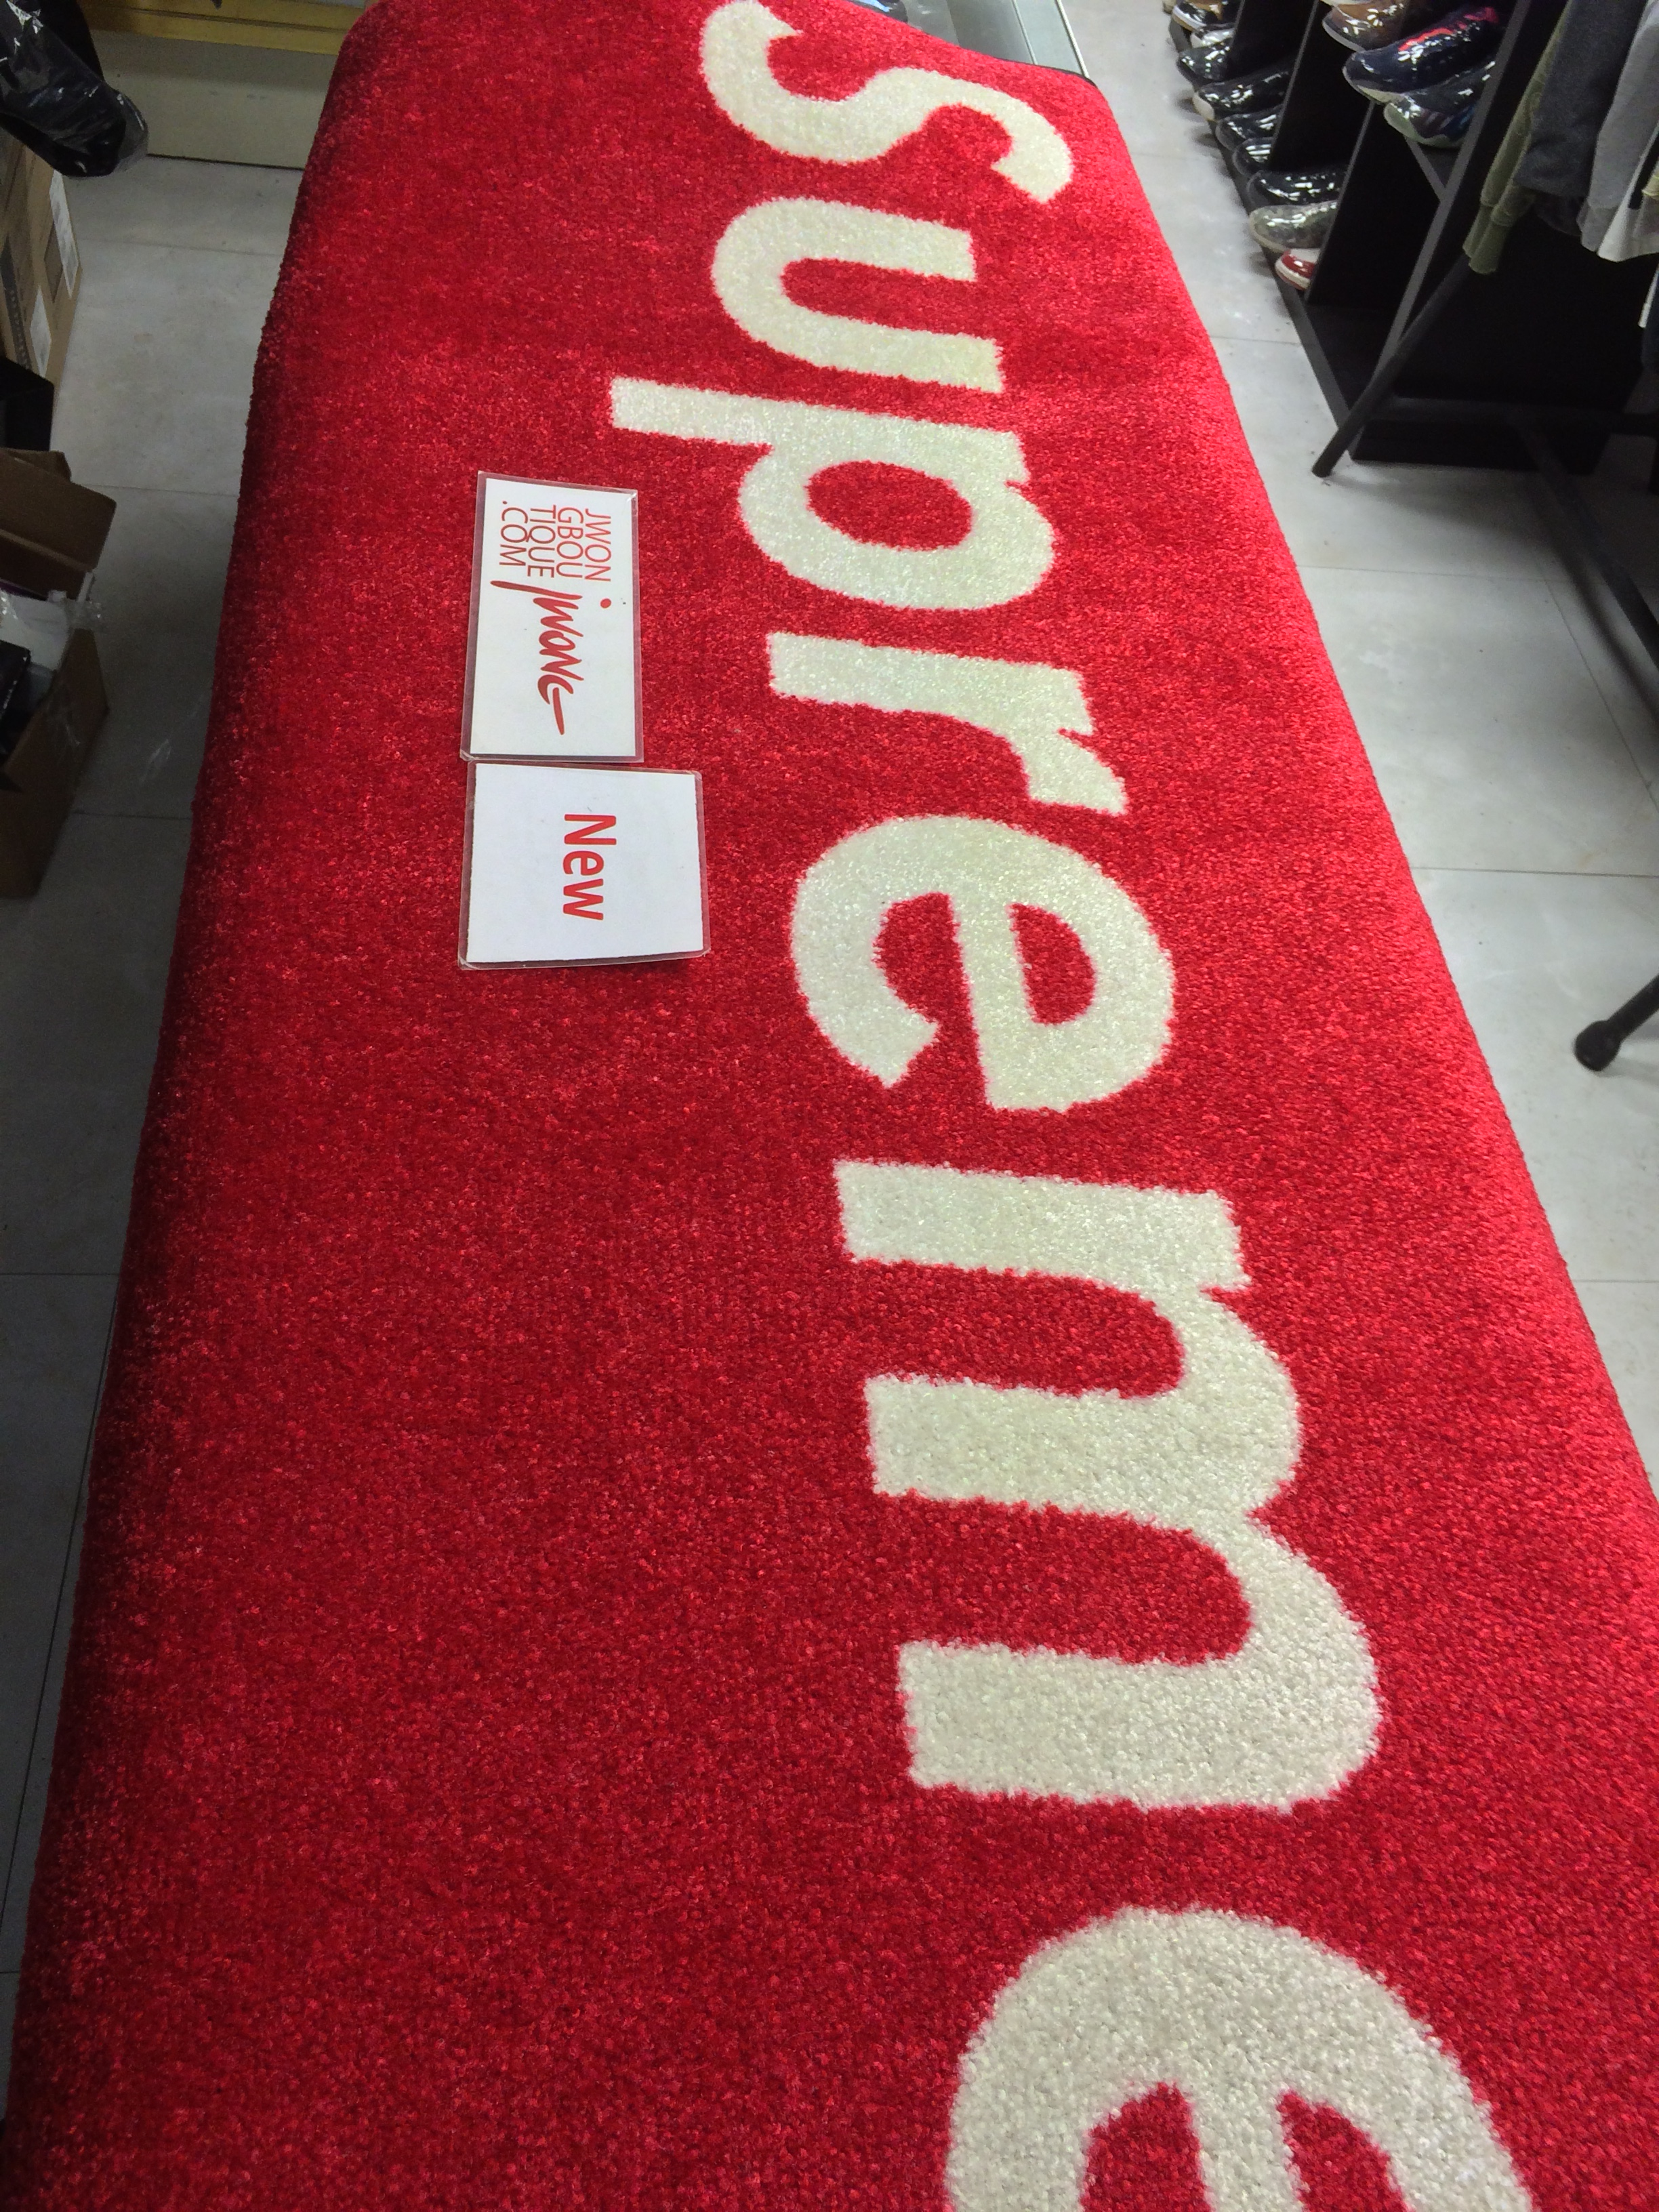 Supreme Rug Red Box Vip 3 Ft By 5 Ft Jwong Boutique